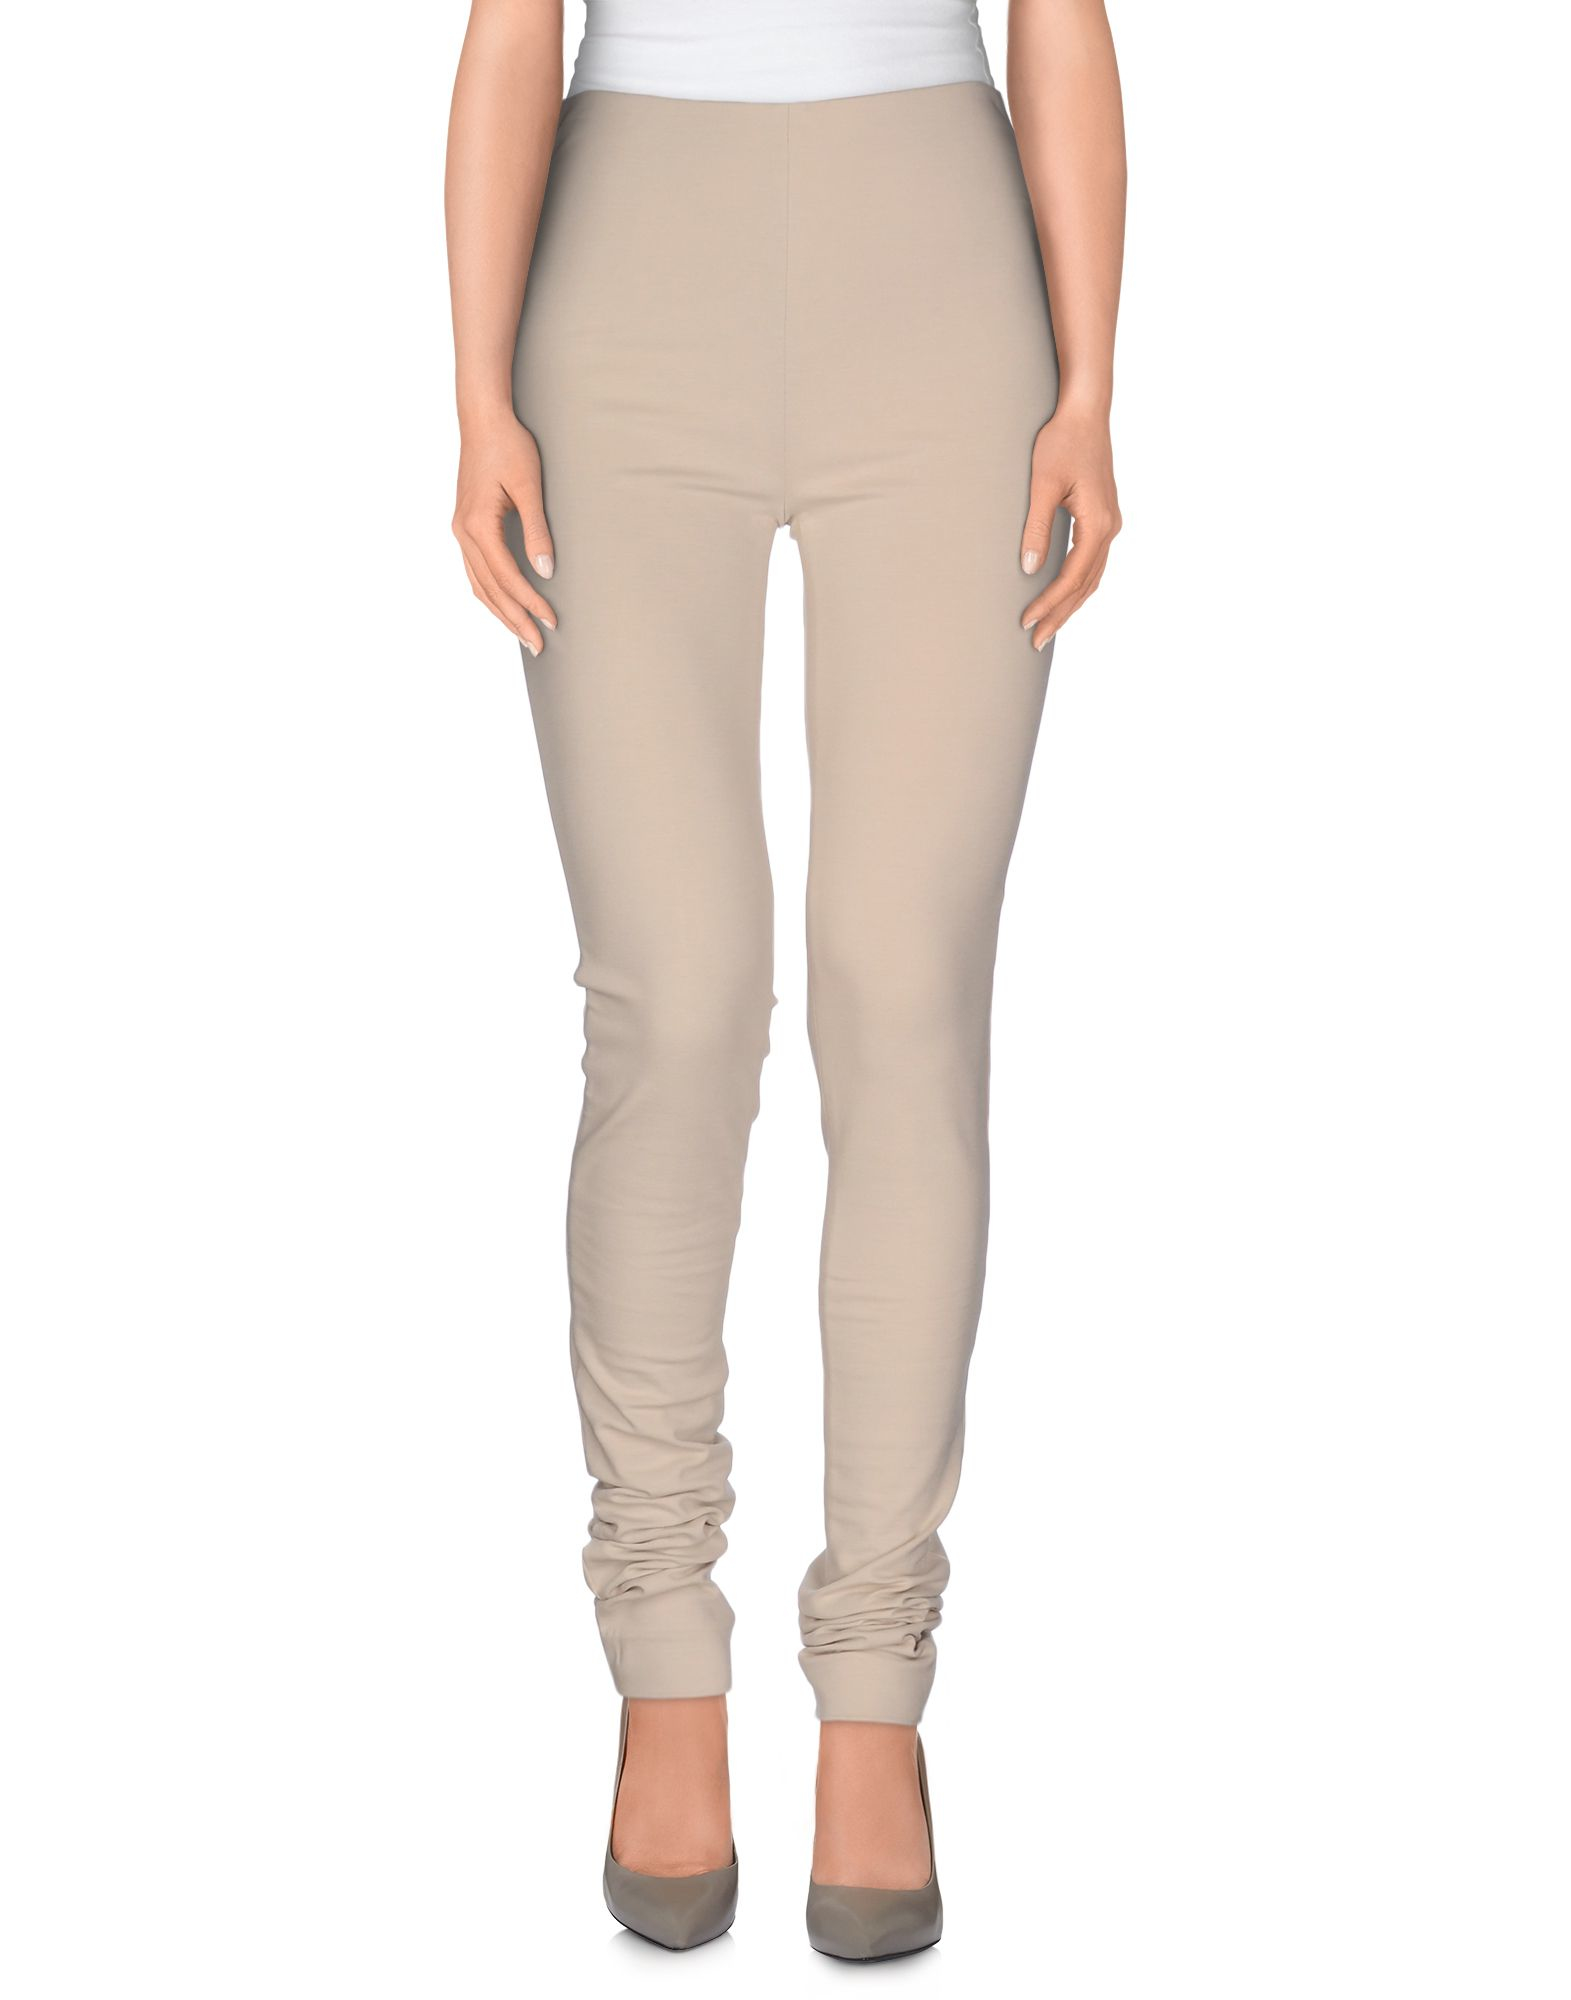 Designer Women's Pants, Dress Pants and Leggings. Build everyday versatility into your wardrobe with a premier selection of women's pants and leggings, featuring designs that range from neutral classics to modern patterns teeming with attitude.